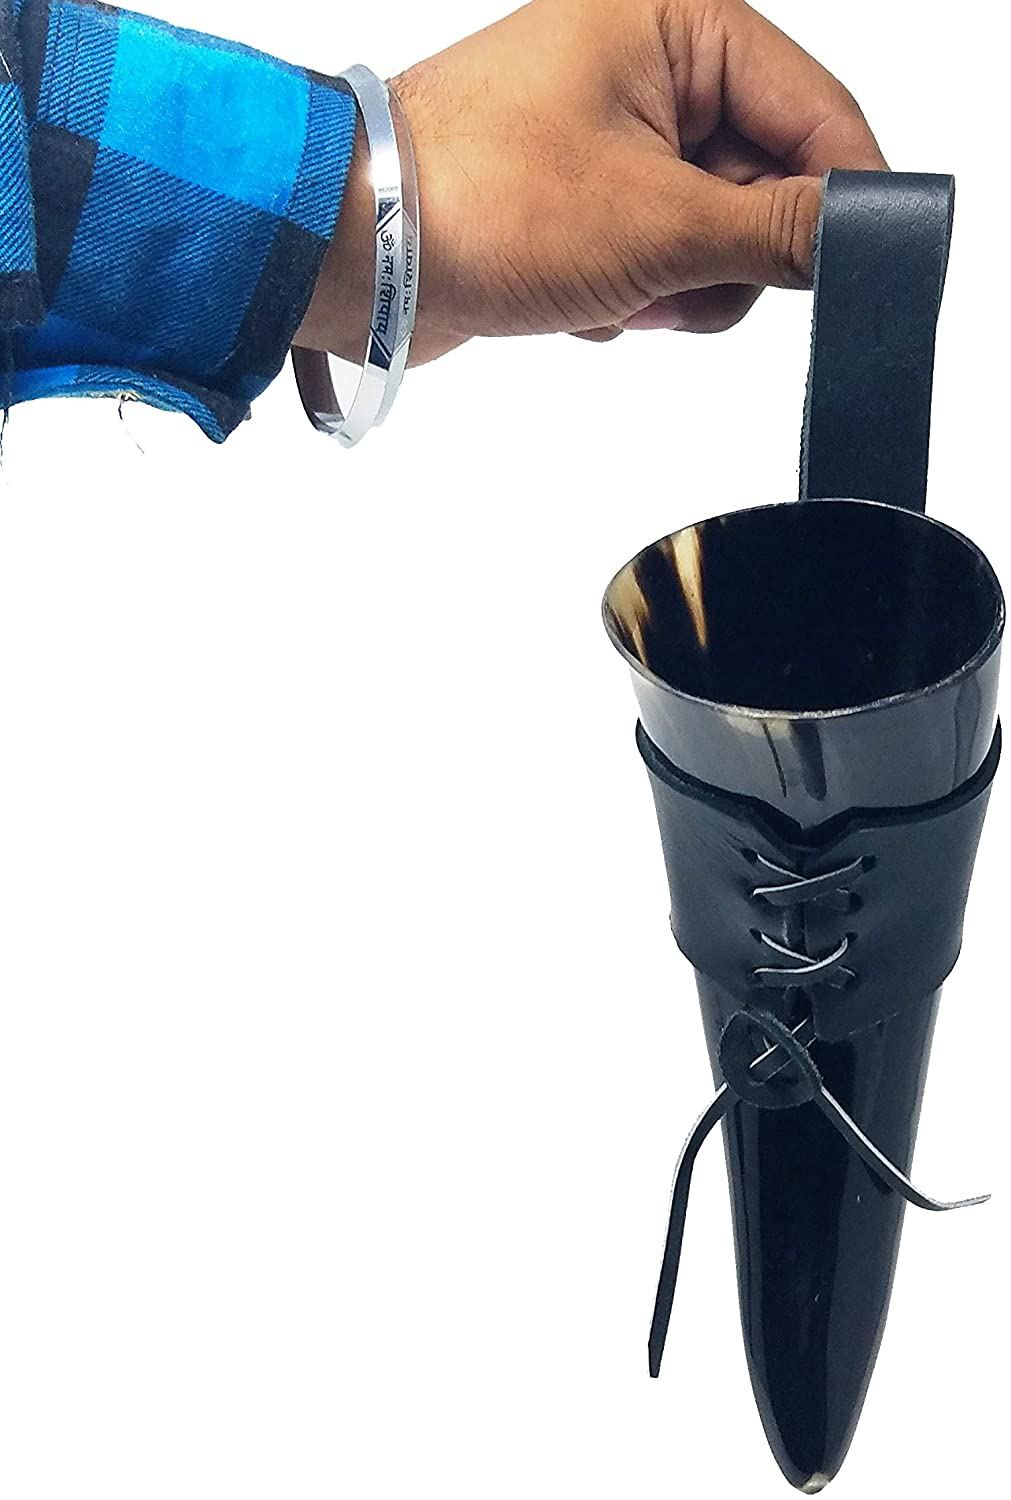 Buddha4all Handcrafted Authentic Viking Drinking Horn With Leather Holder Tankard for Beer Mead Ale Medieval Inspired Game of Thrones (Belt Holder)